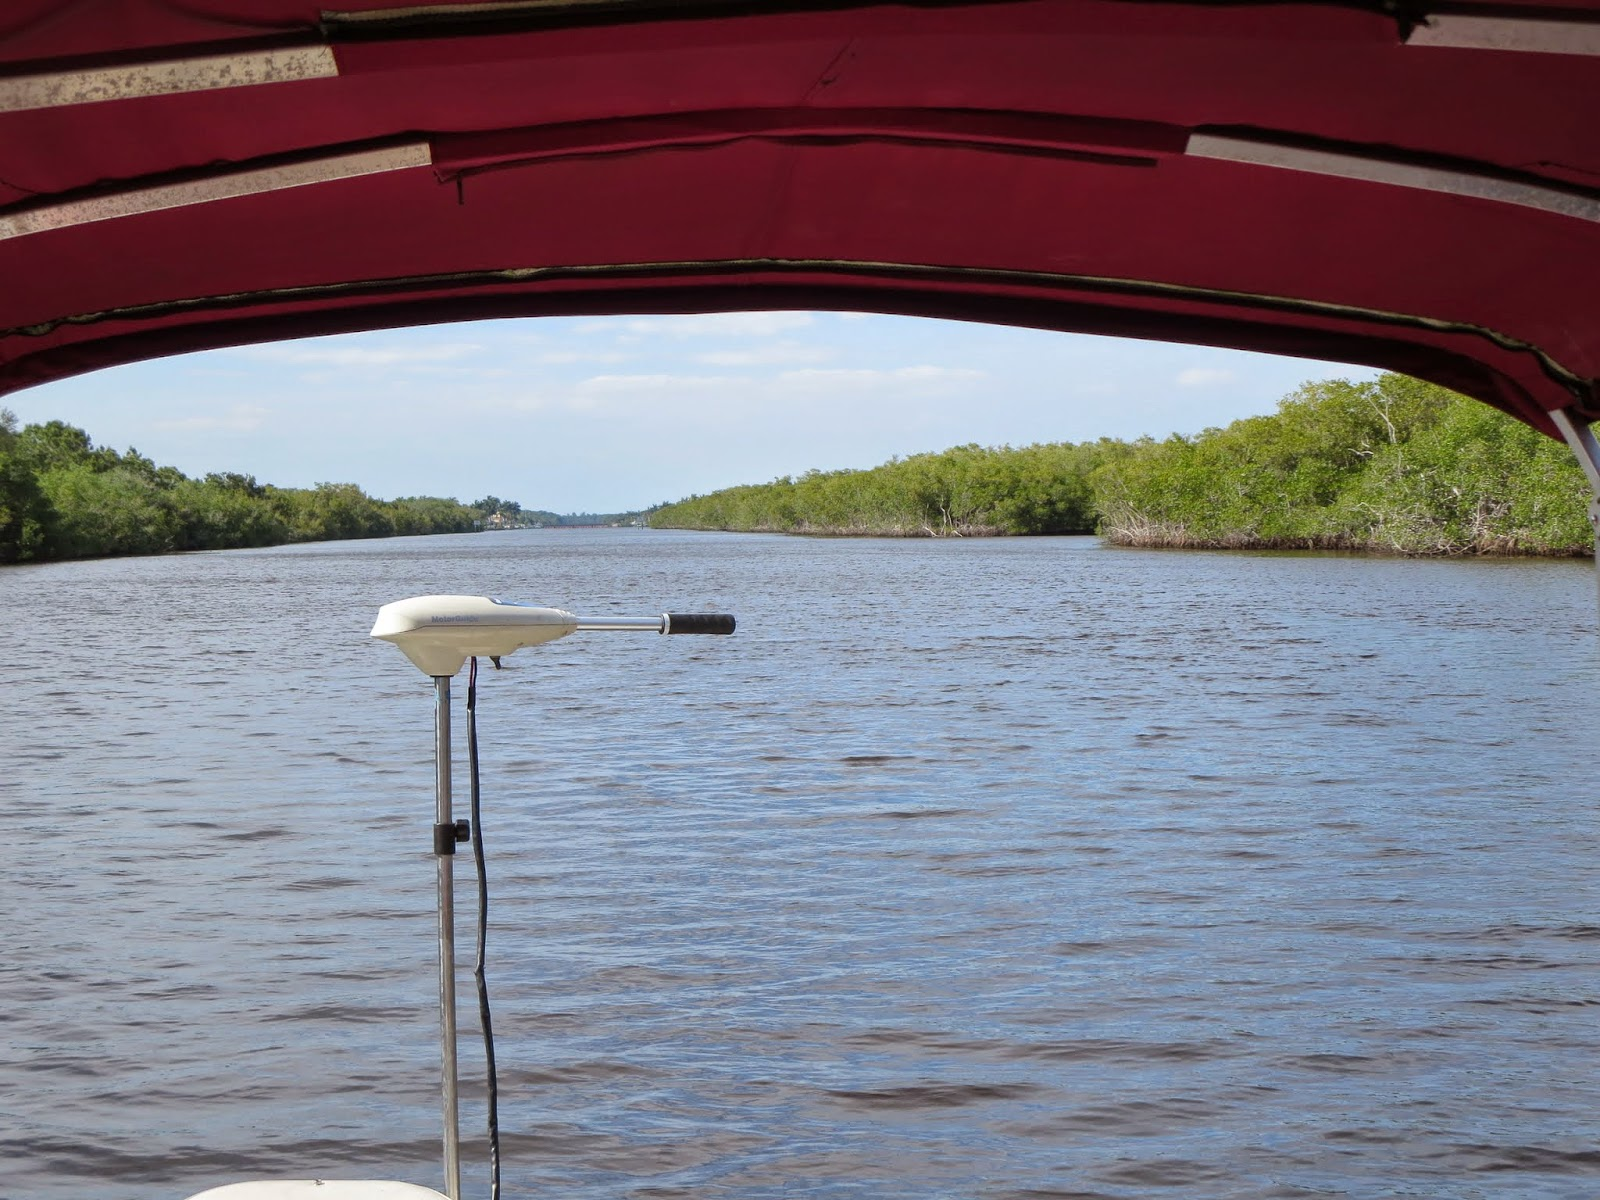 Where to see manatees in Florida: Tiny motor on the boat used to spot manatees near Naples